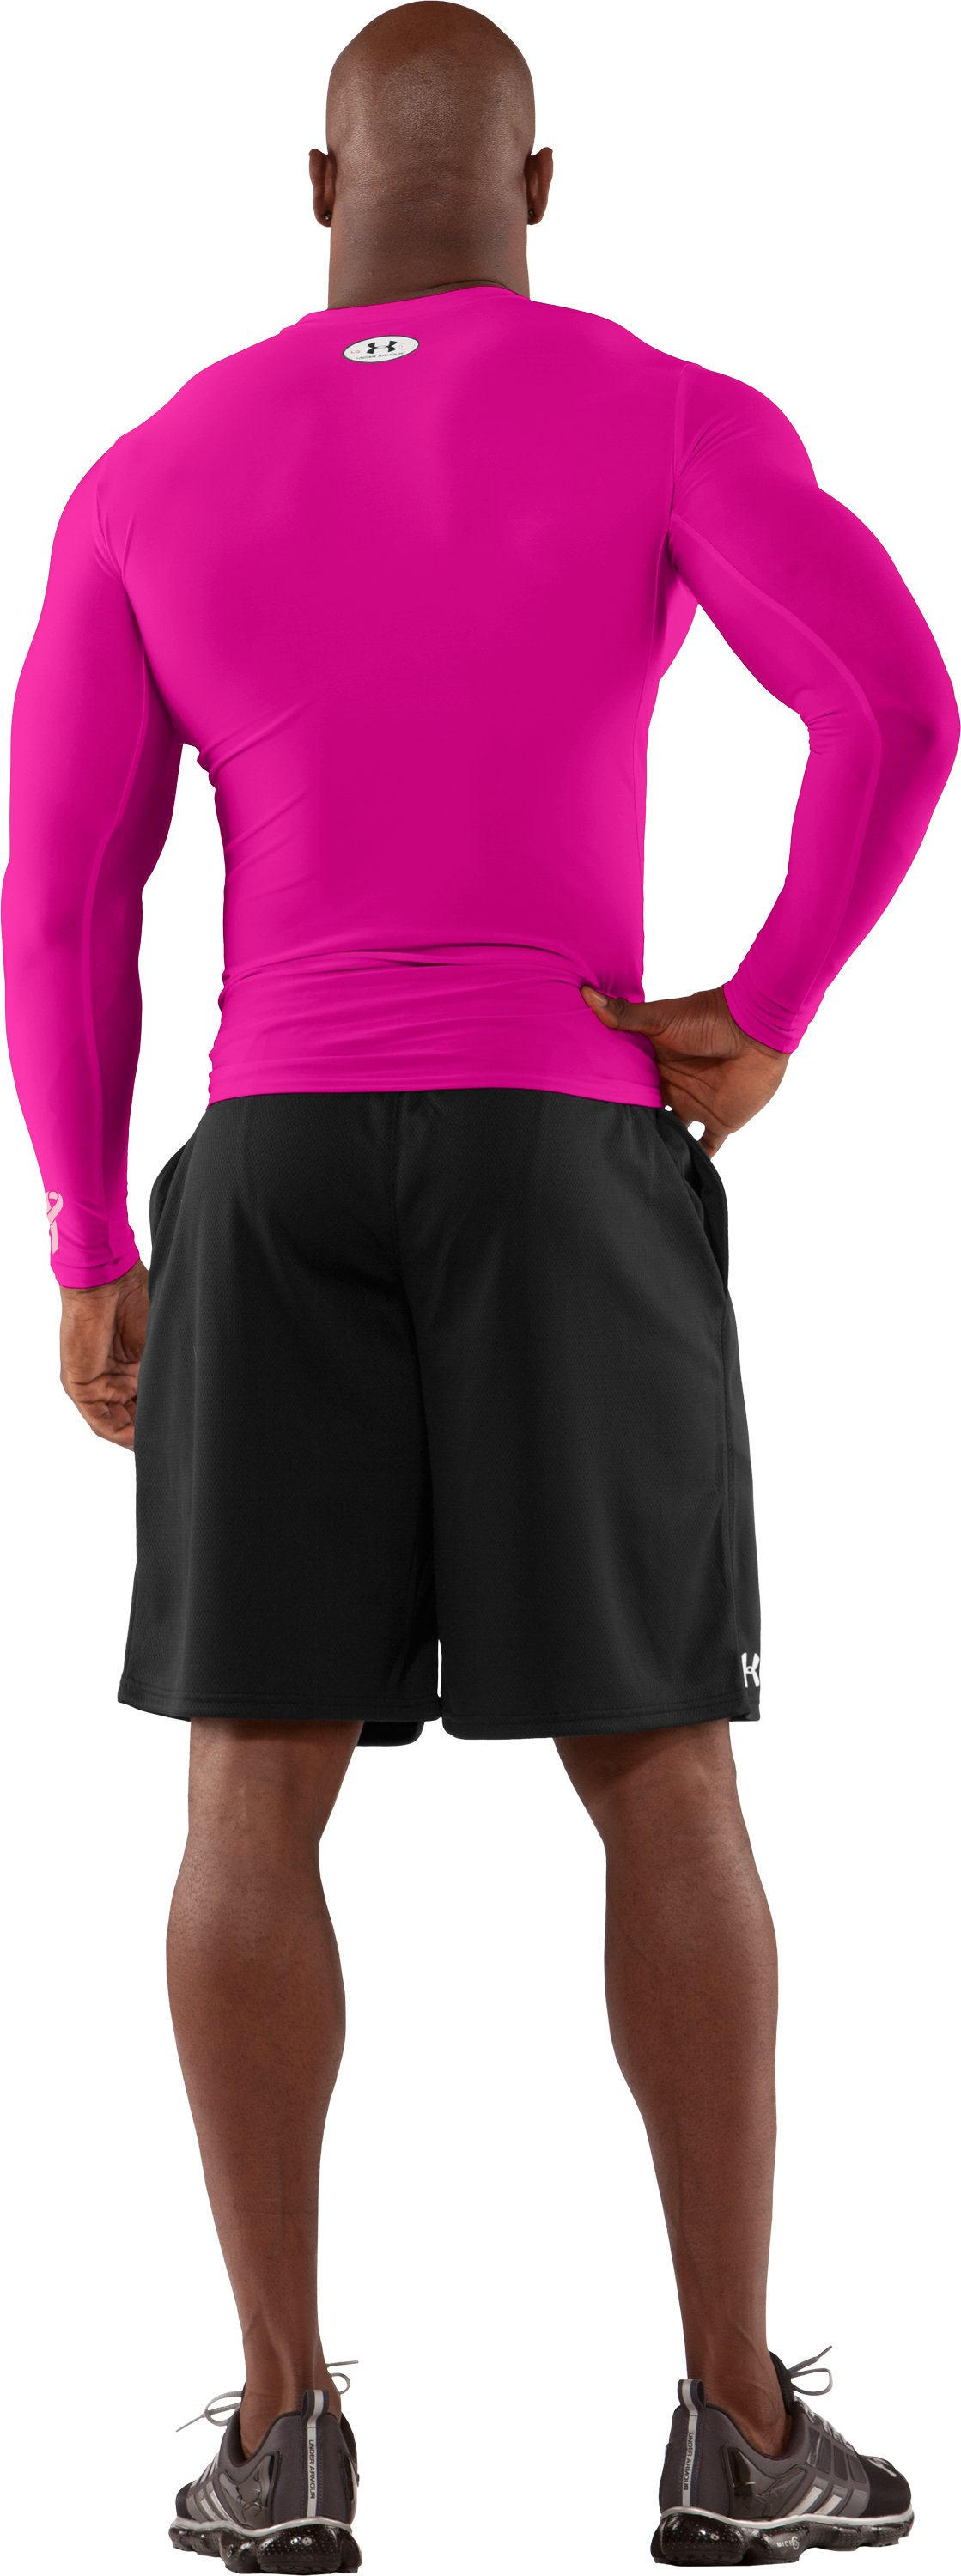 Men's HeatGear® Compression Long Sleeve T-Shirt, Tropic Pink, Back